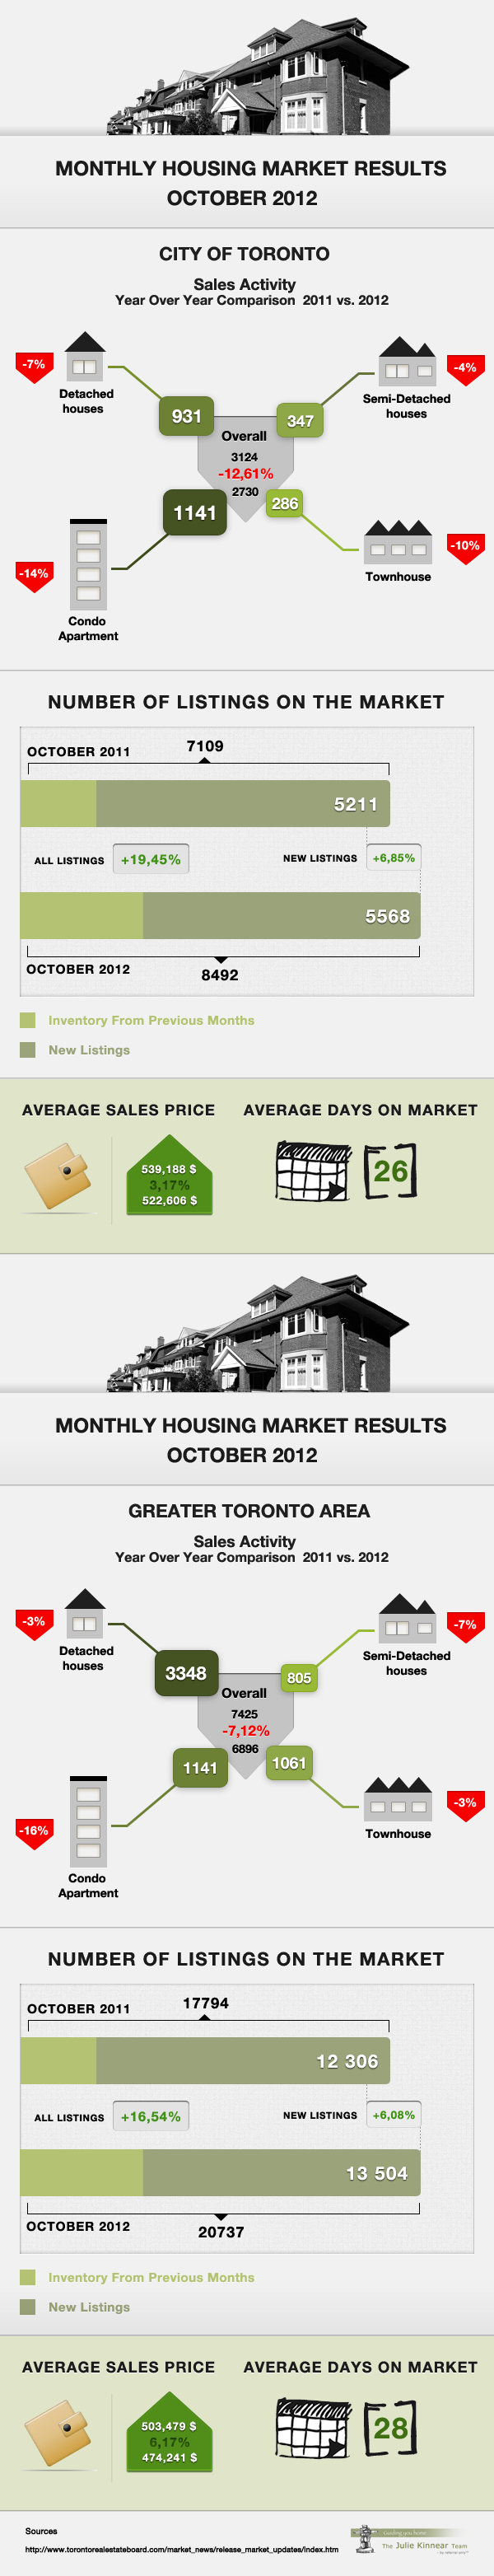 monthly housing market results toronto october 2012 infographic